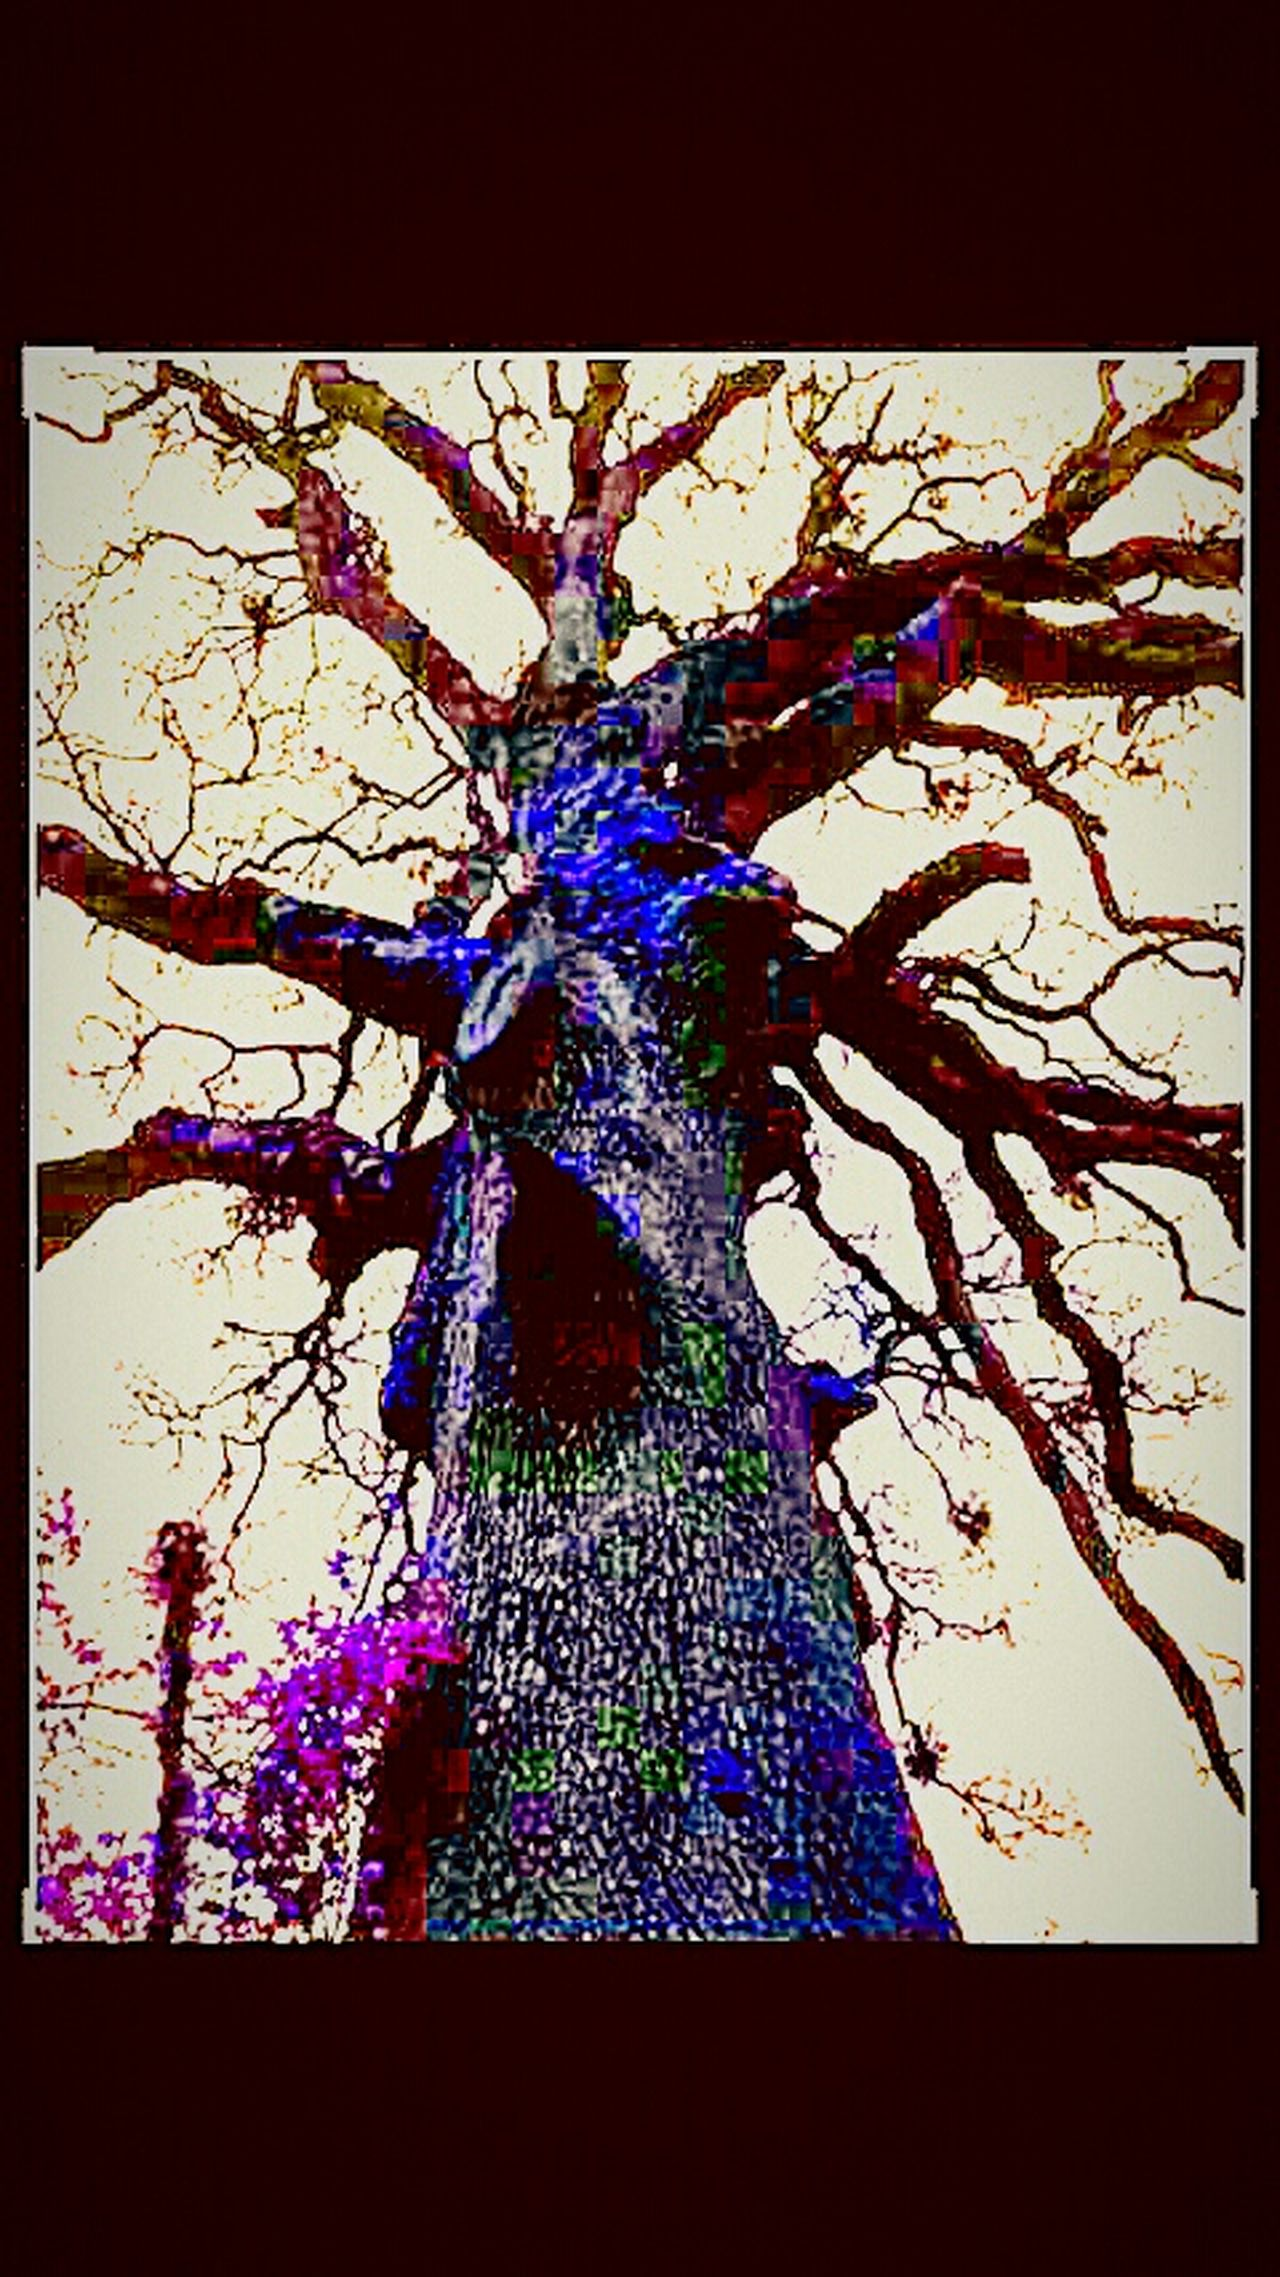 Spooky Tree Beauty In Nature Beauty Redefined Diamond In The Rough Color Portrait Sparkle Splash Of Color Purple And Blue Colorful Moss Reedited Tree Hugger Weird Tree I Like My Own Pictures!✌😎 Weird Stuff Weird Nature